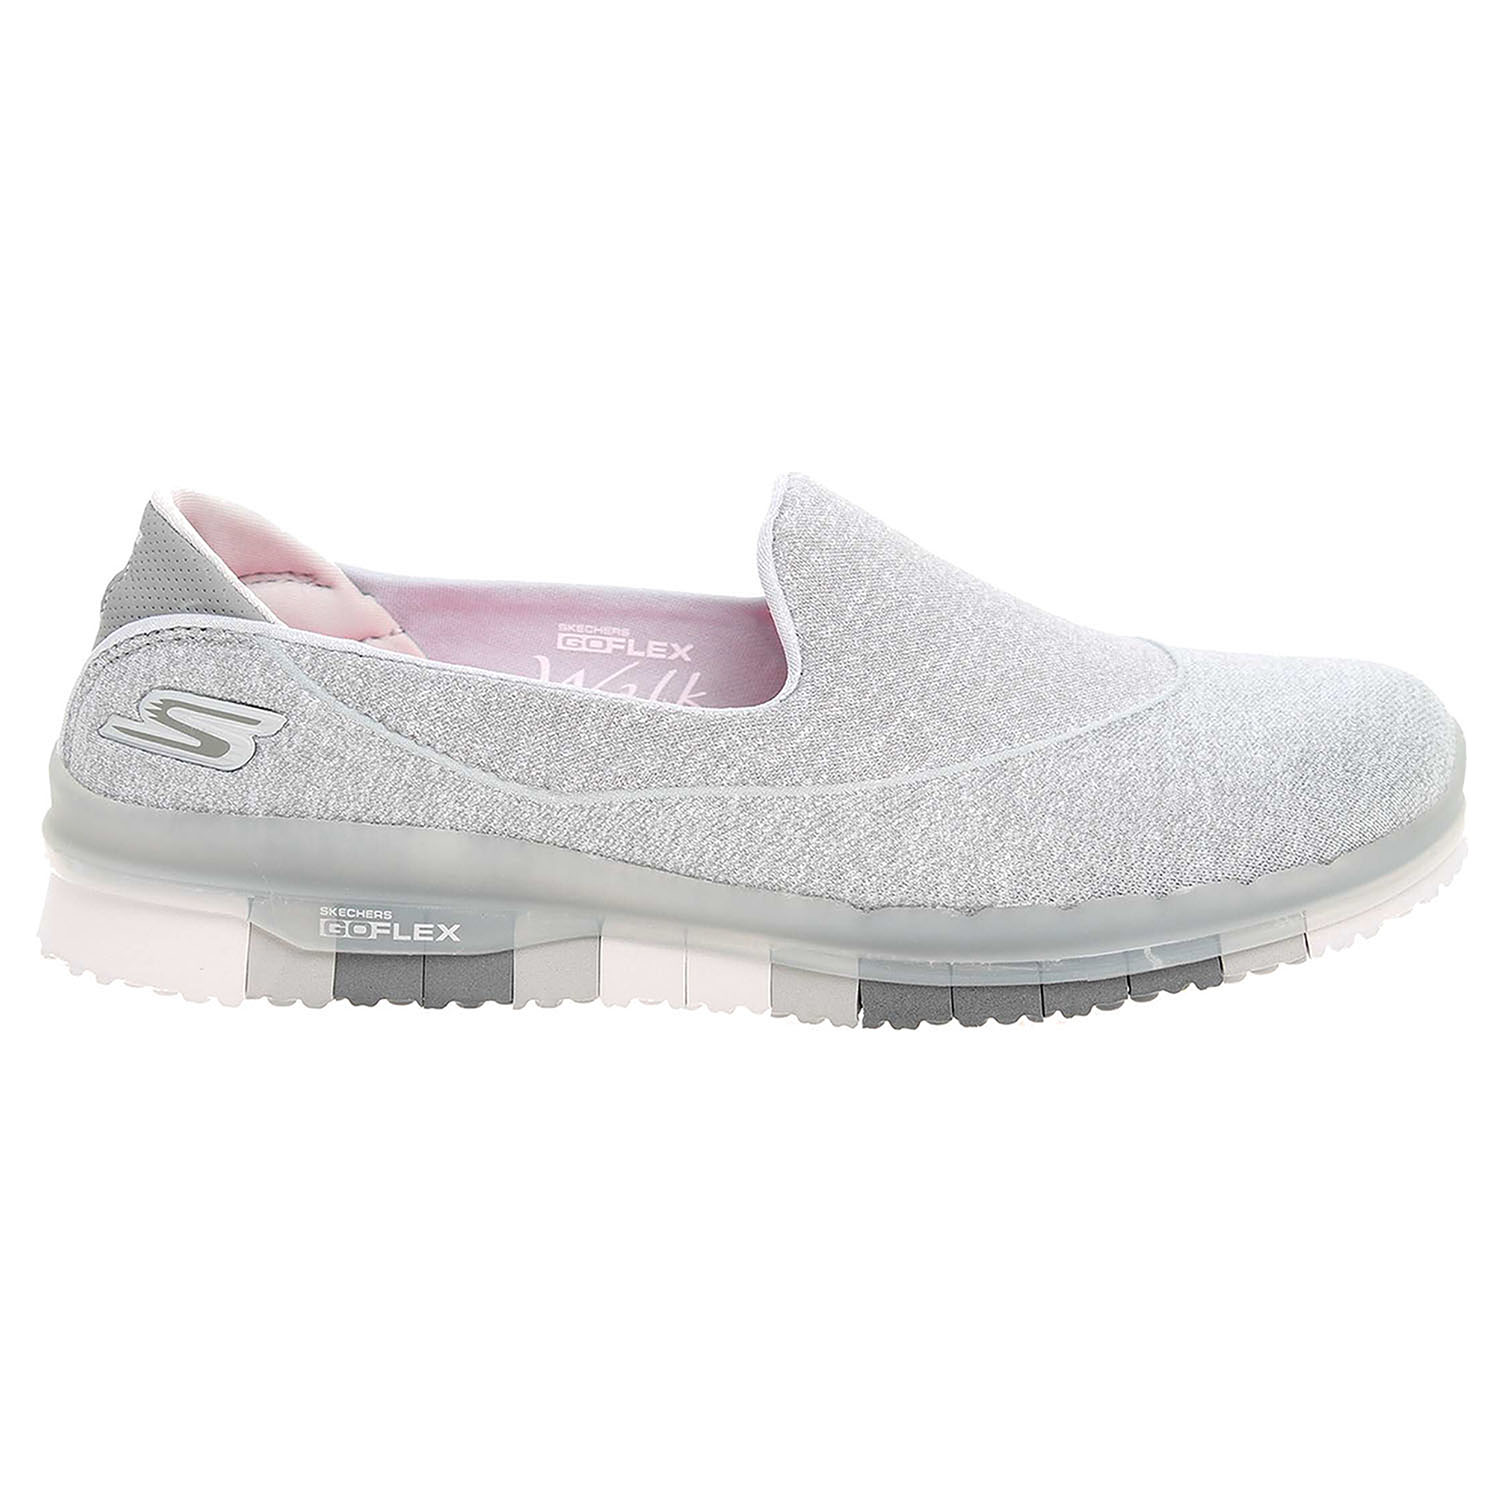 Skechers Go Flex gray 40